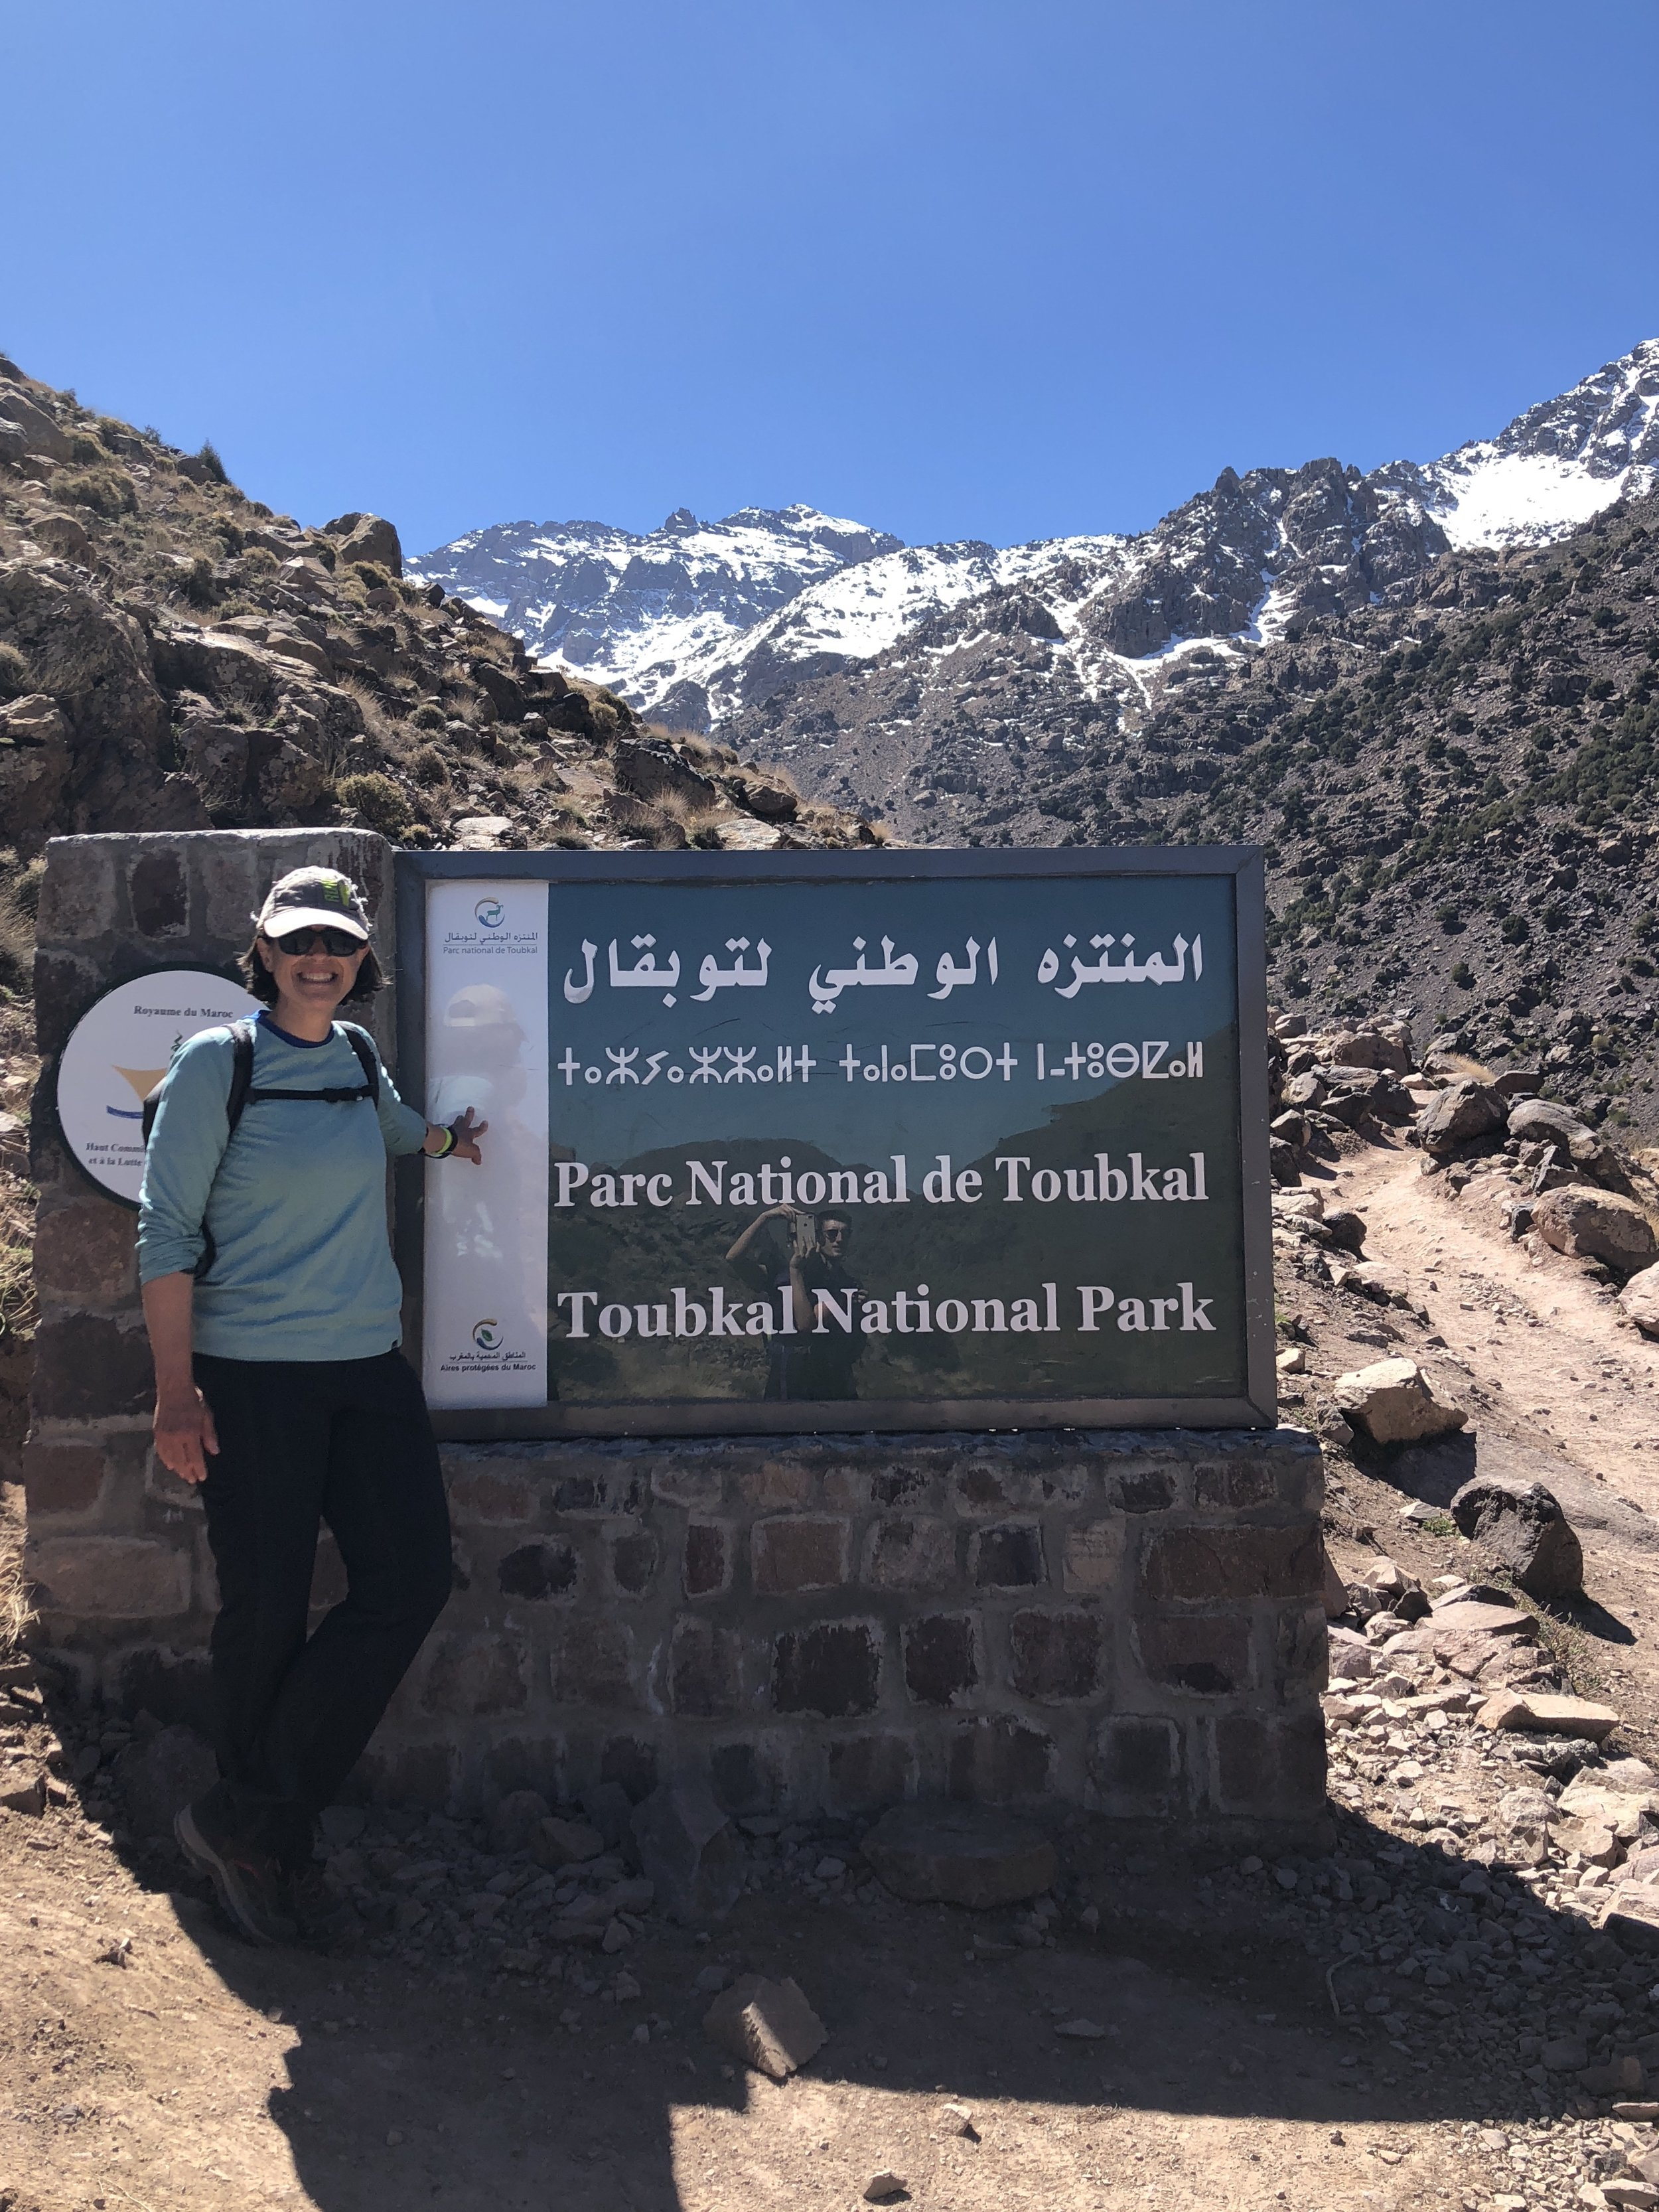 Hikers and polyglots welcome.